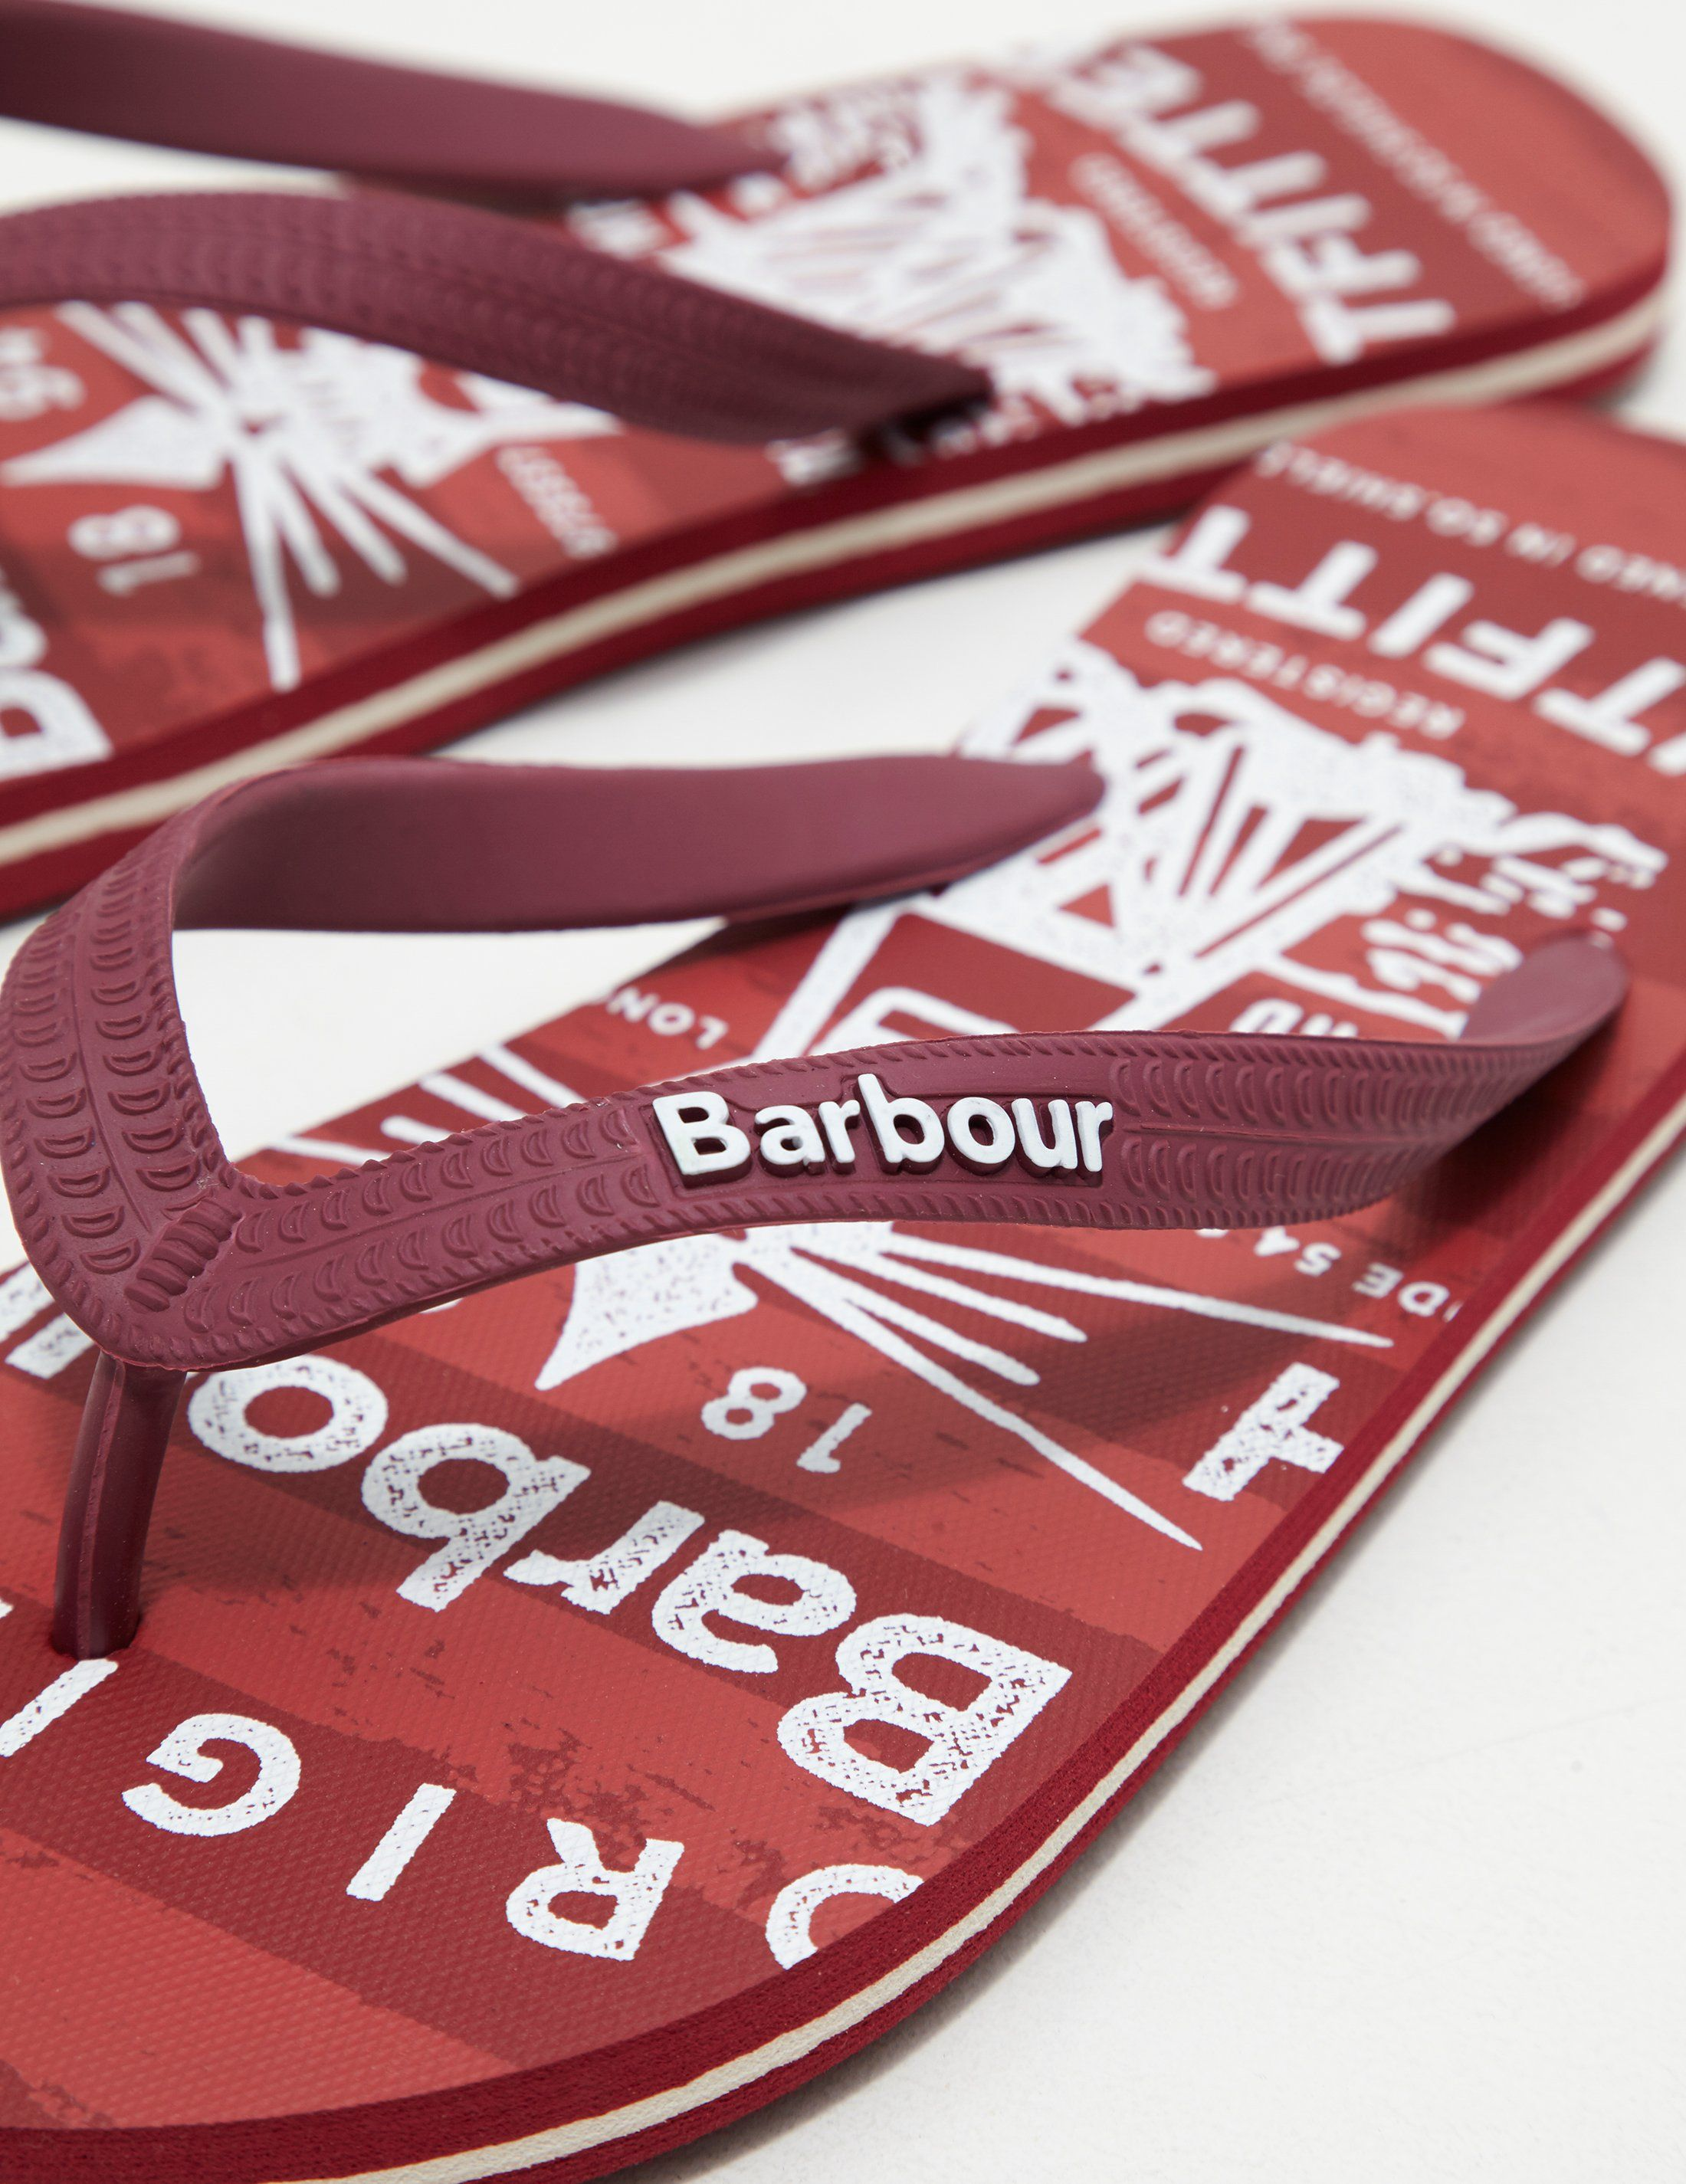 Barbour Beach Flip Flops